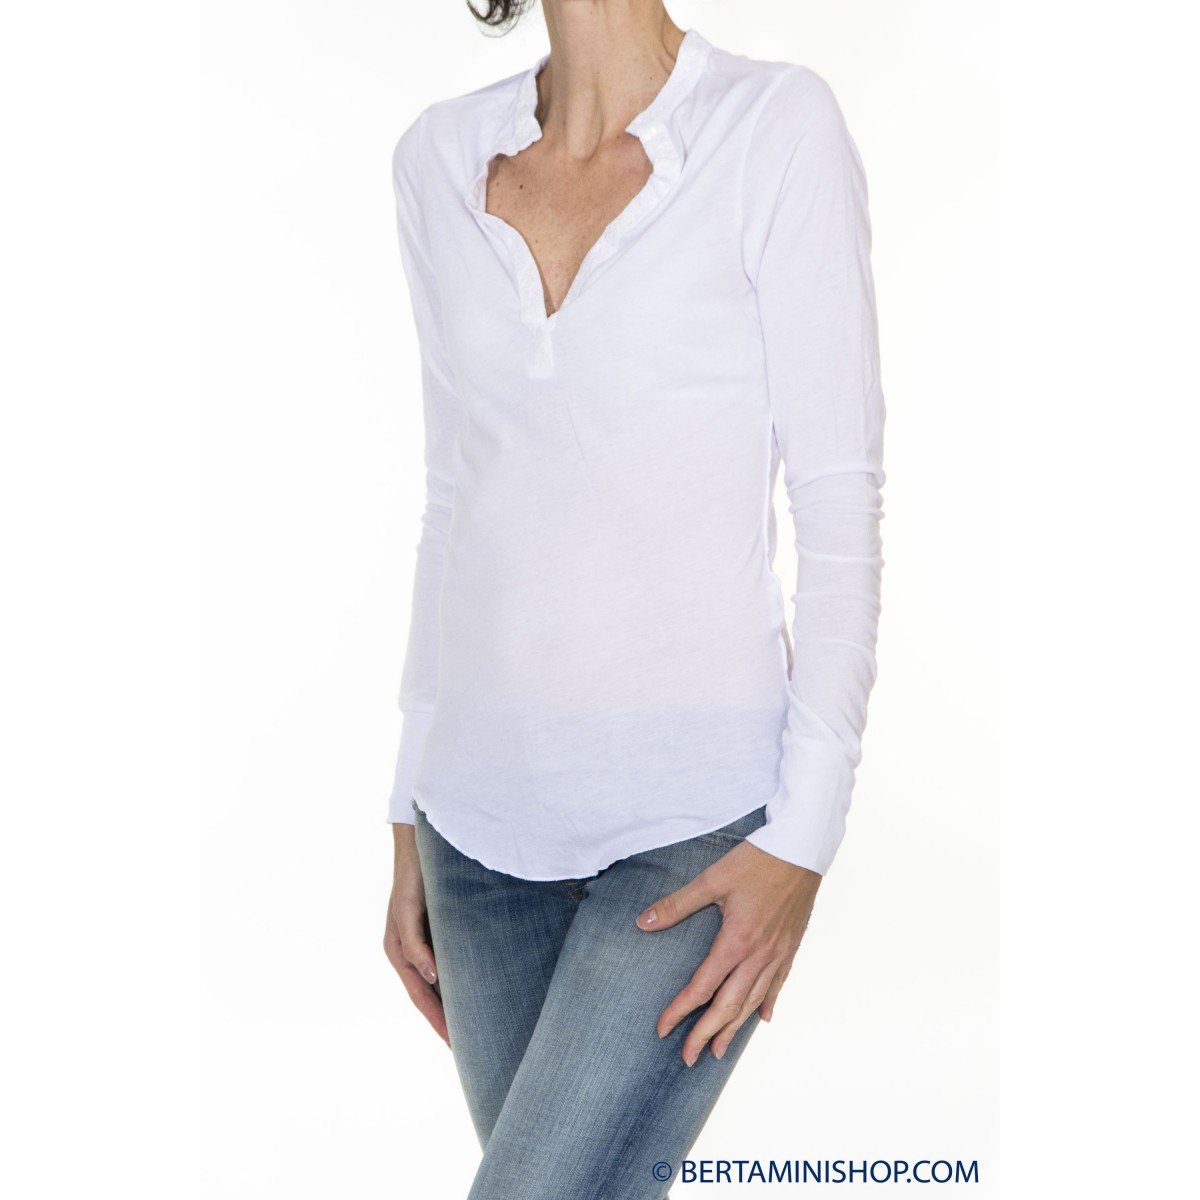 T-shirt donna Better rich - F33 tshirt manica lunga 2000 - bianco